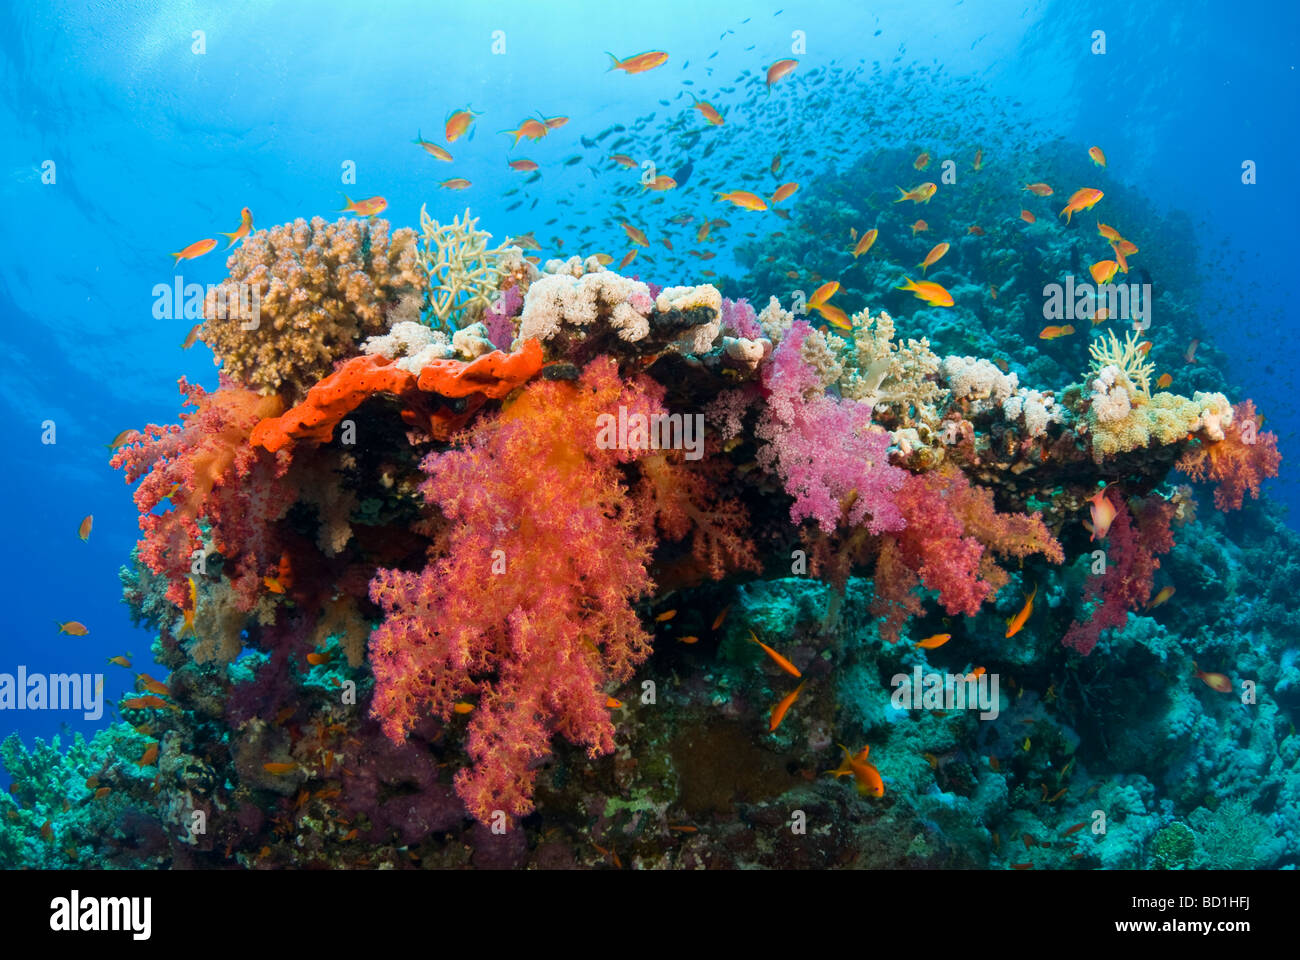 Colorful Fish Stock Photos & Colorful Fish Stock Images - Alamy